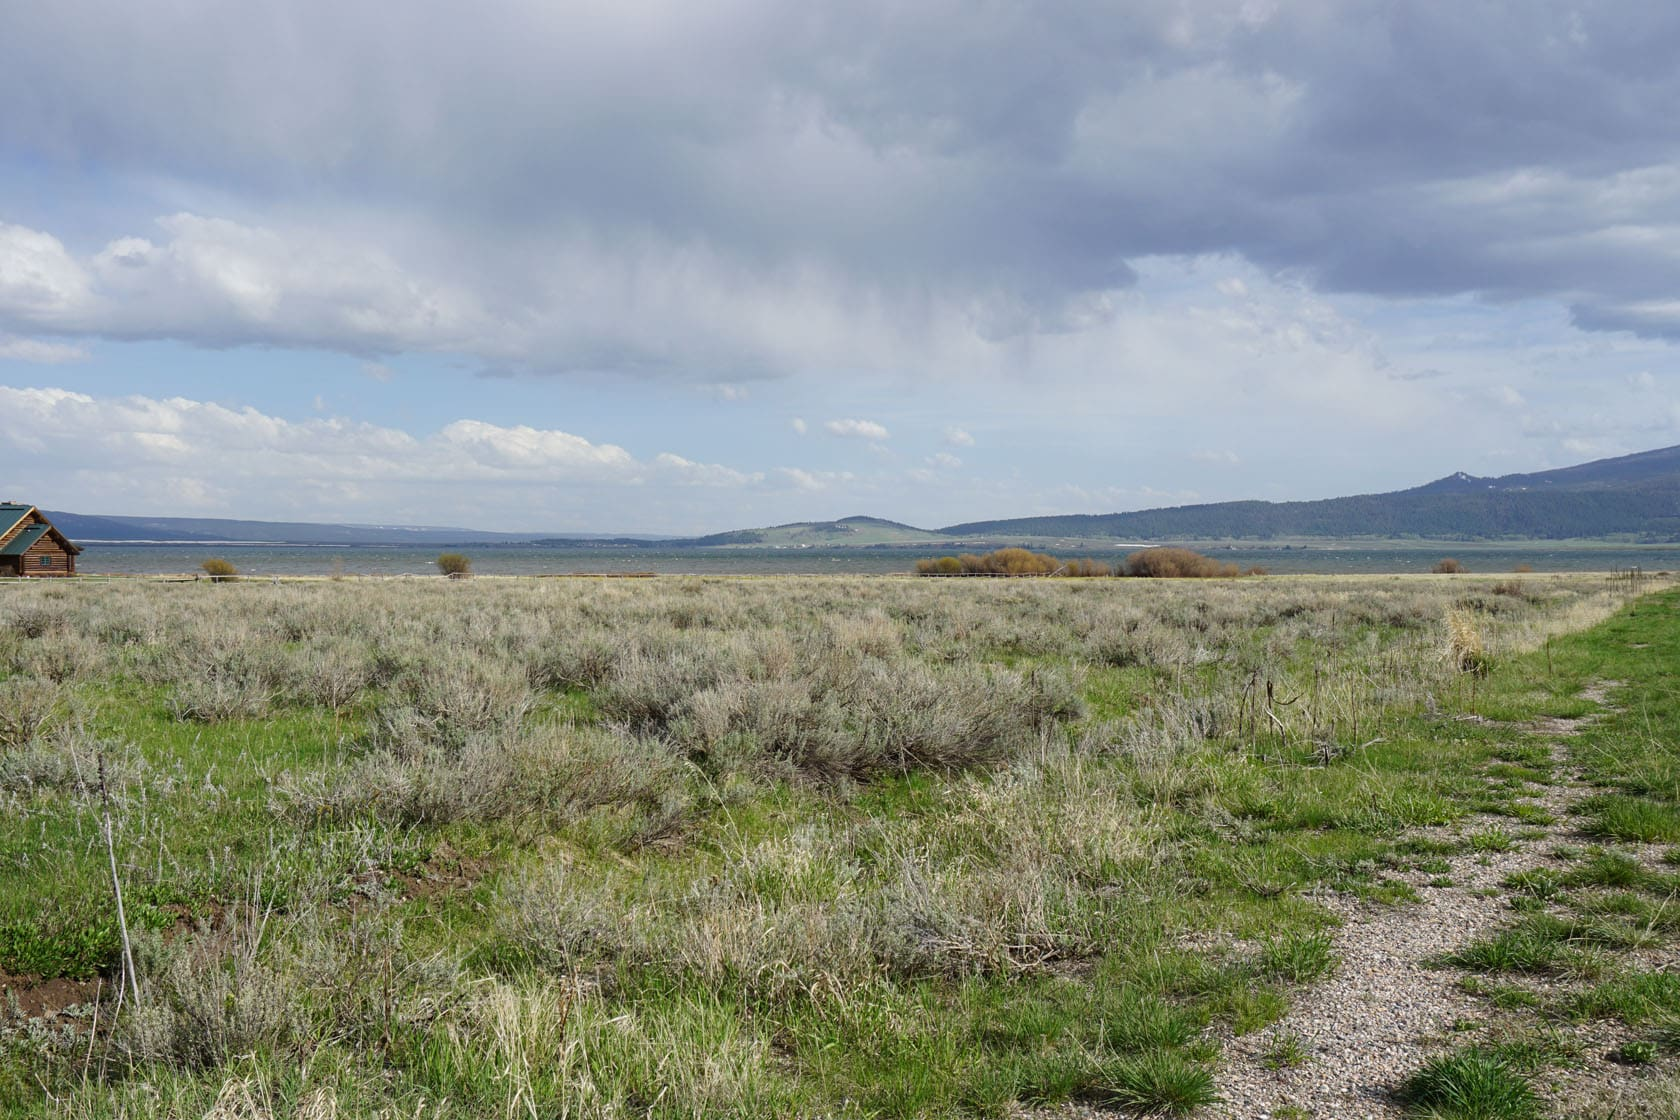 equestrian land for sale idaho pintail point ranch